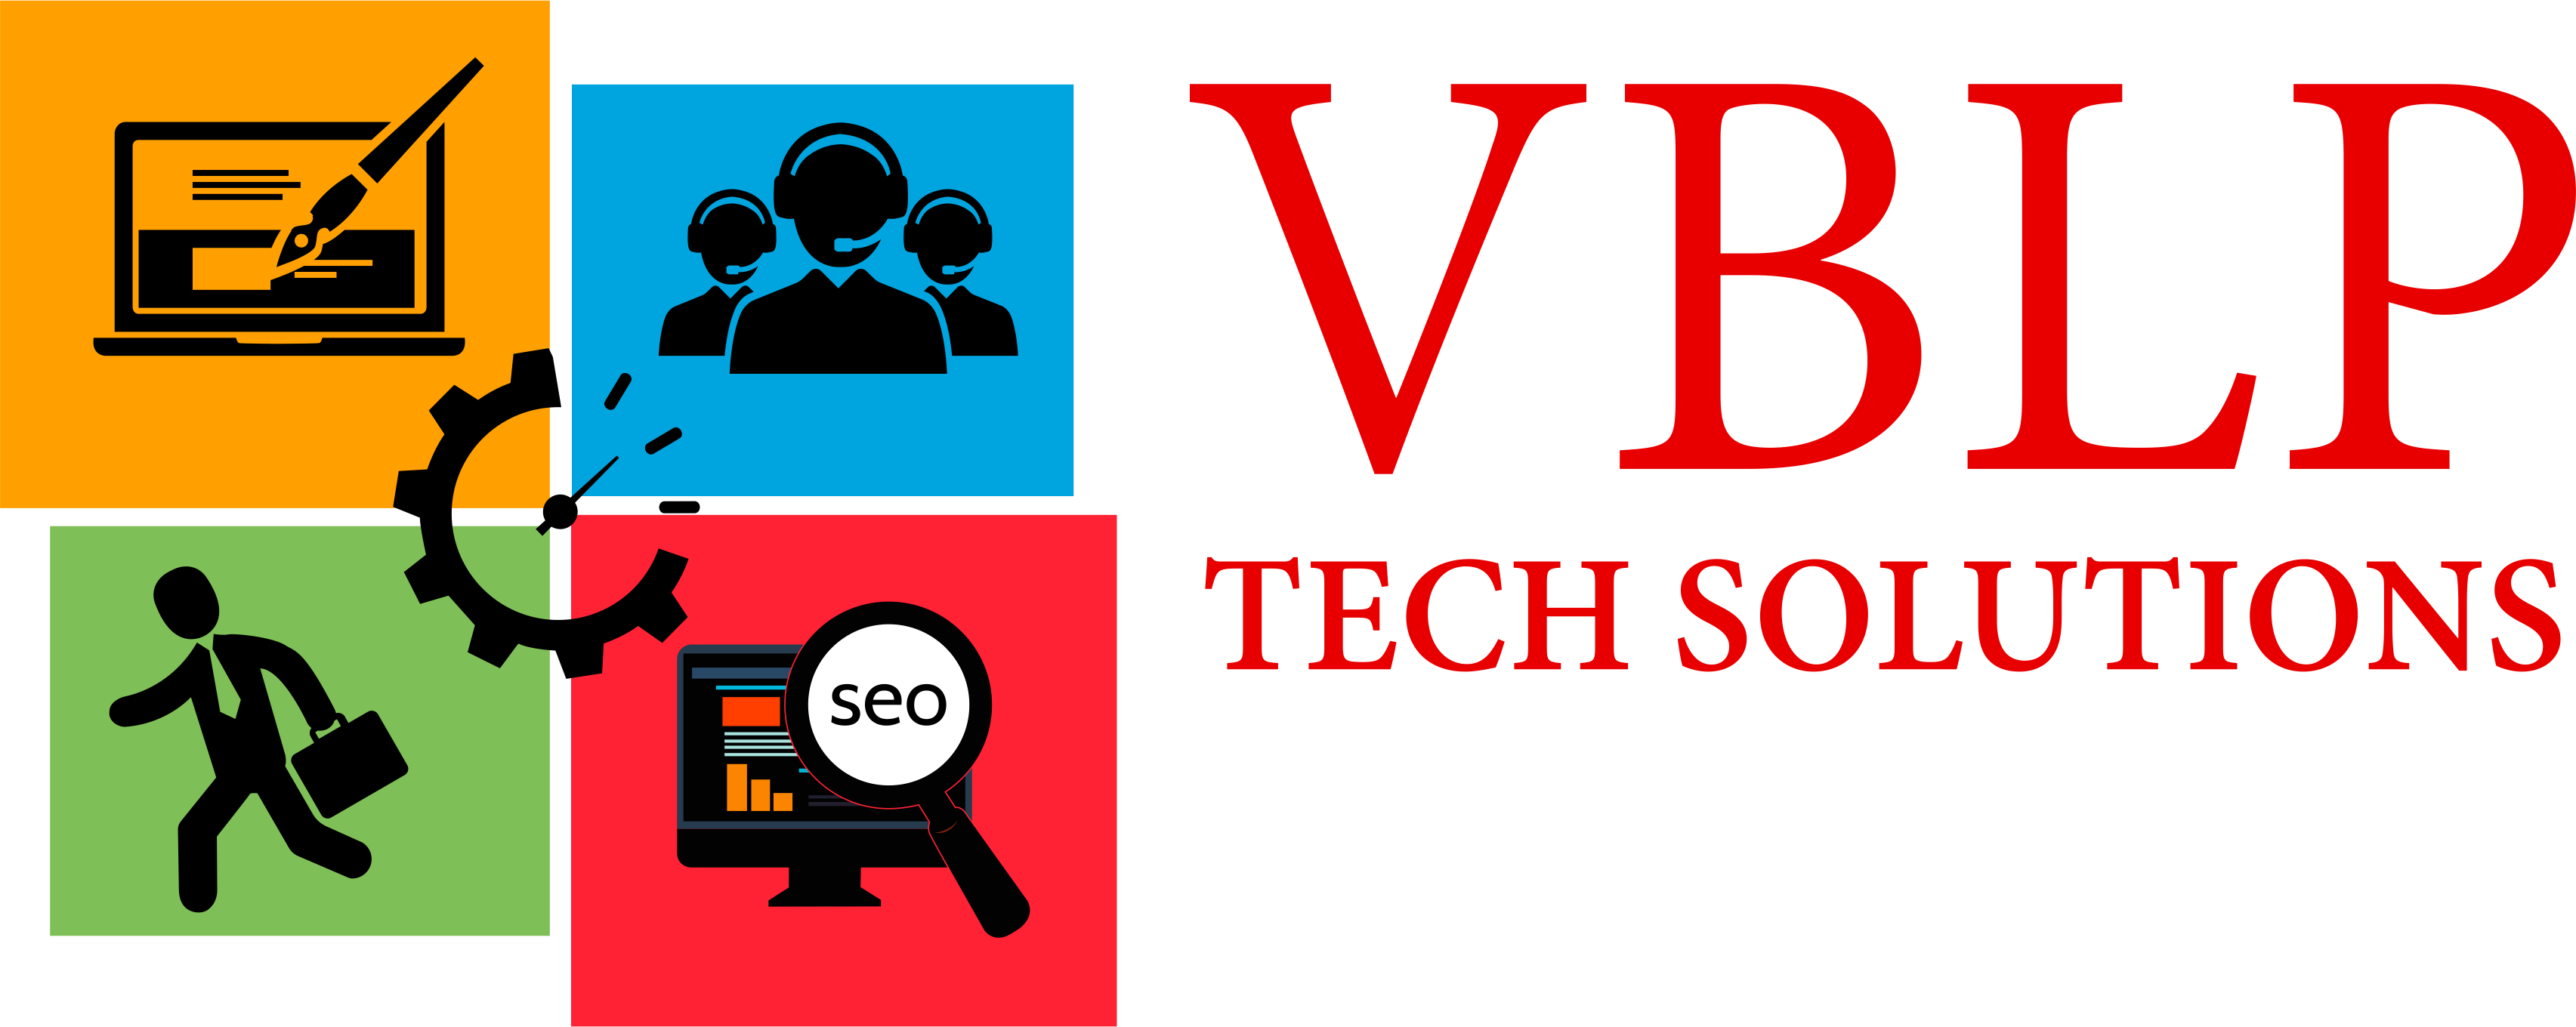 VBLP Tech Solutions Pvt. Ltd